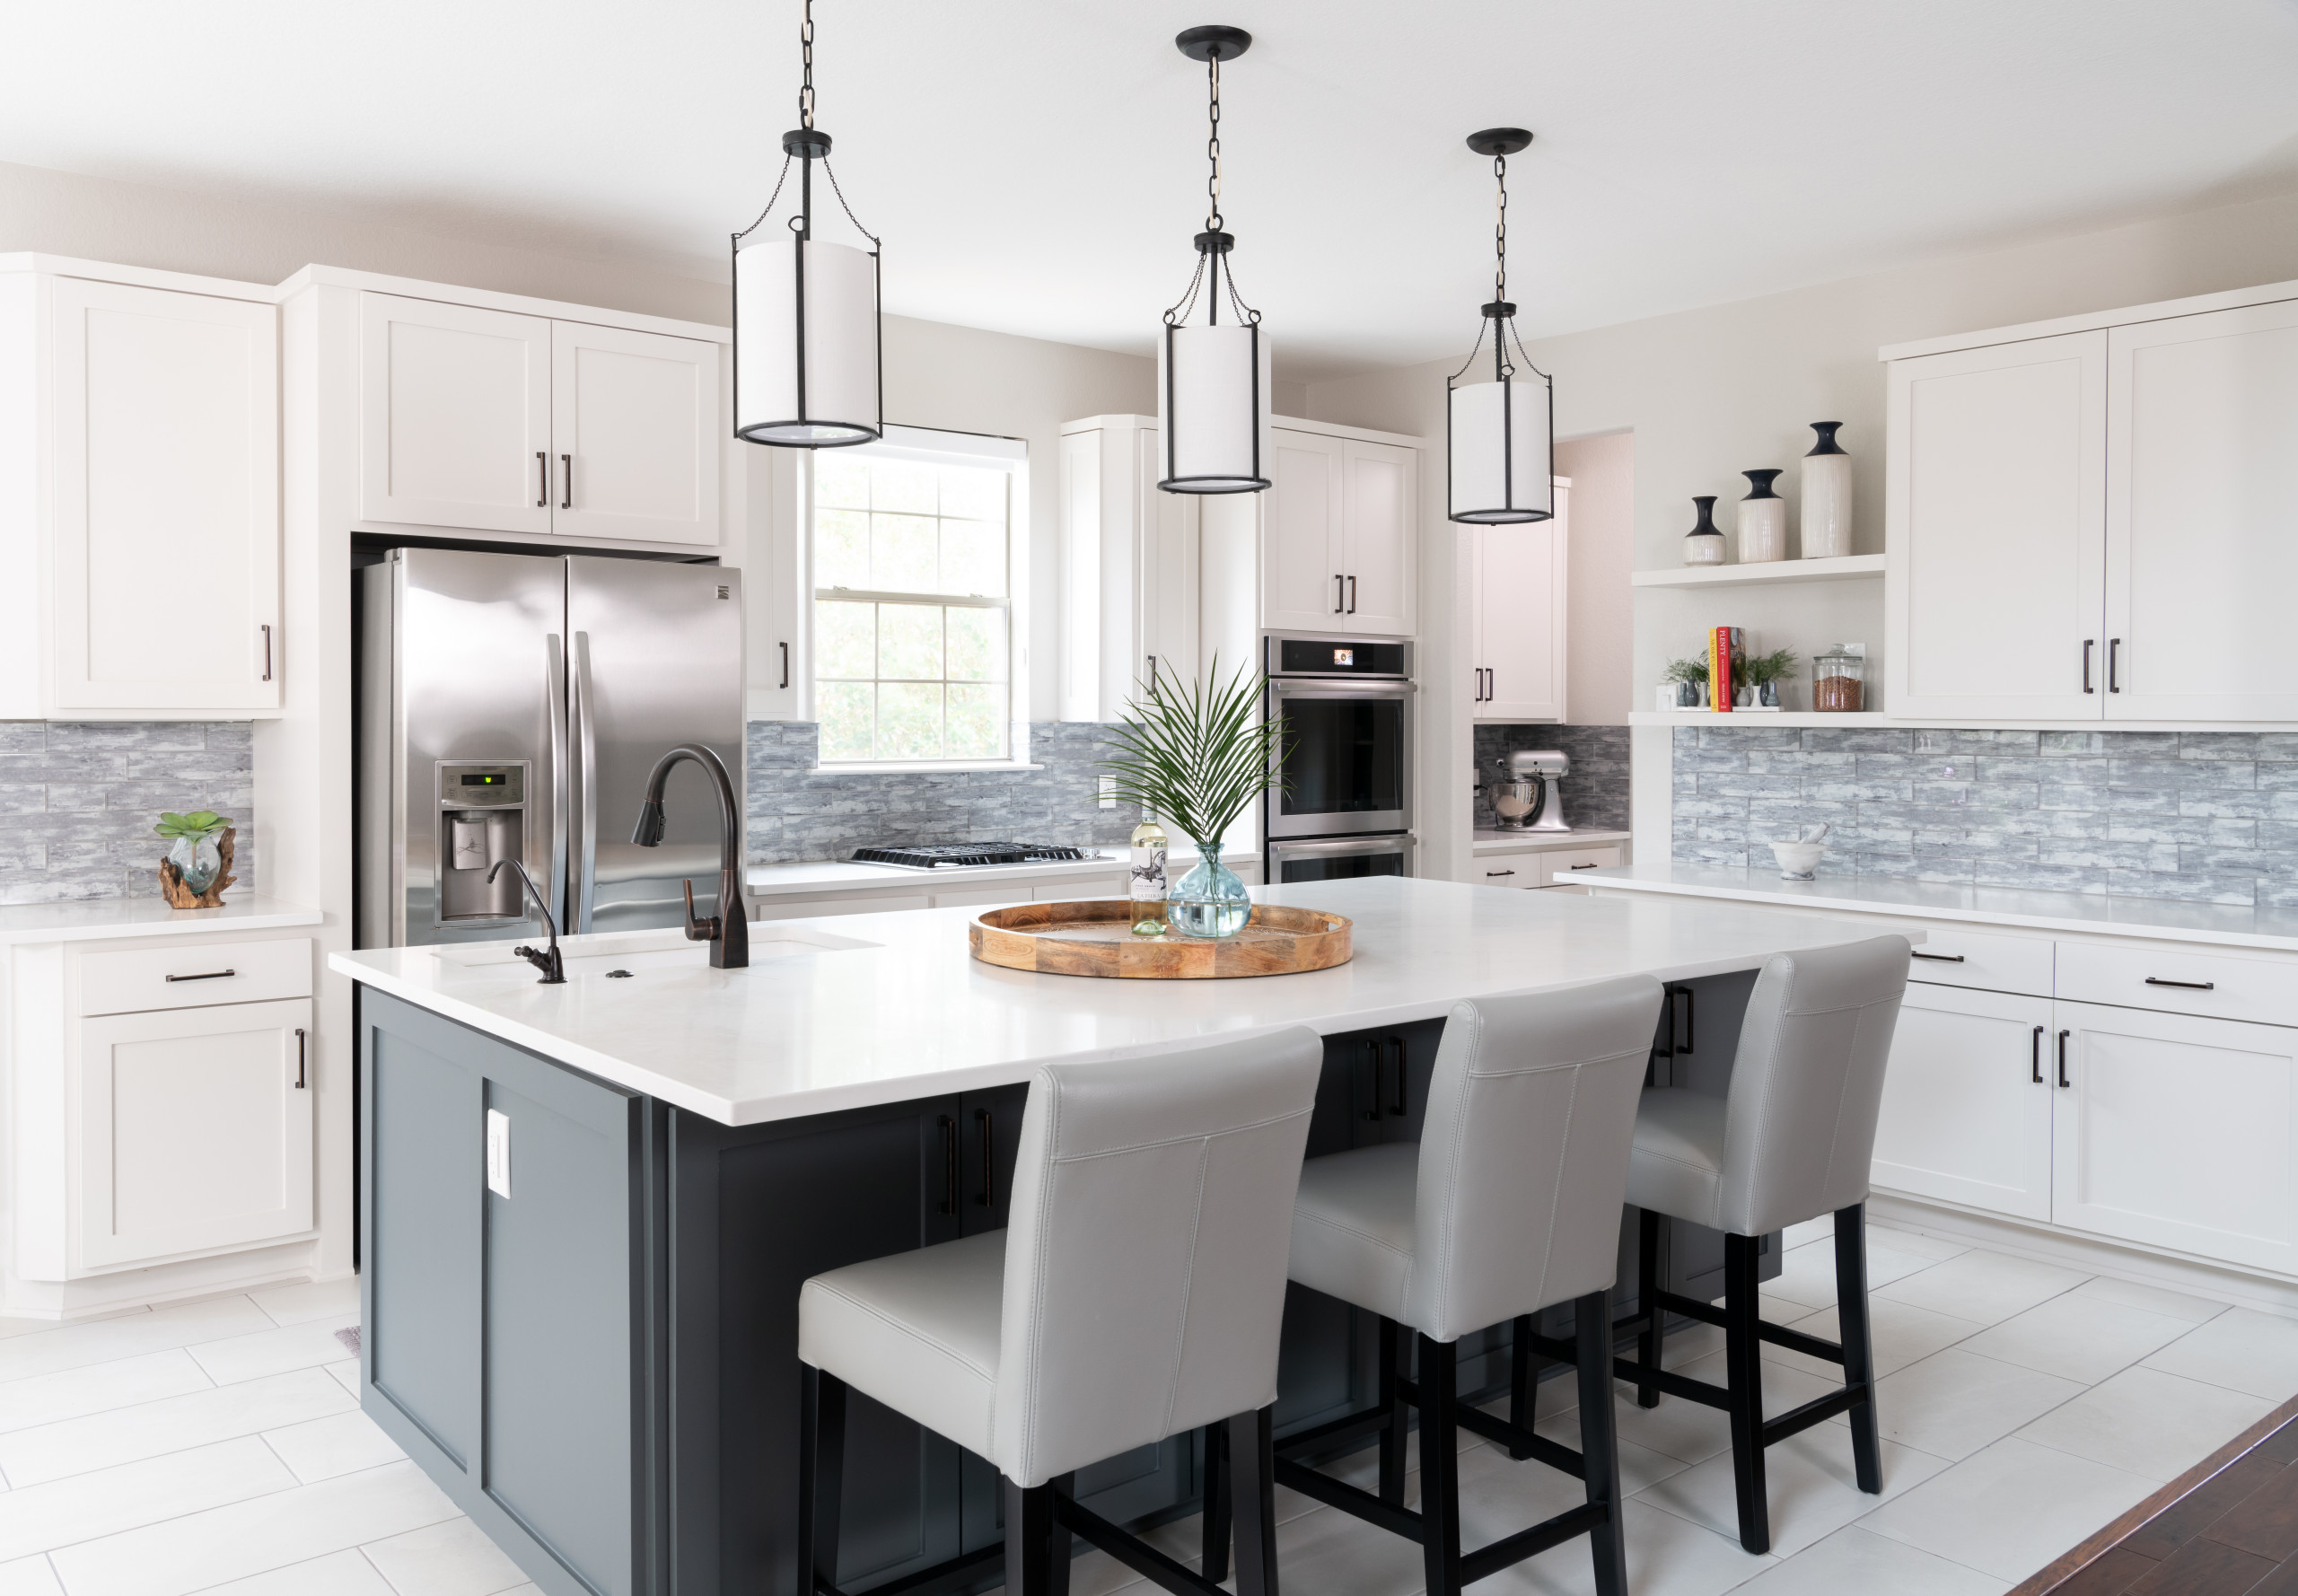 9 Beautiful White Floor Kitchen Pictures & Ideas   September ...